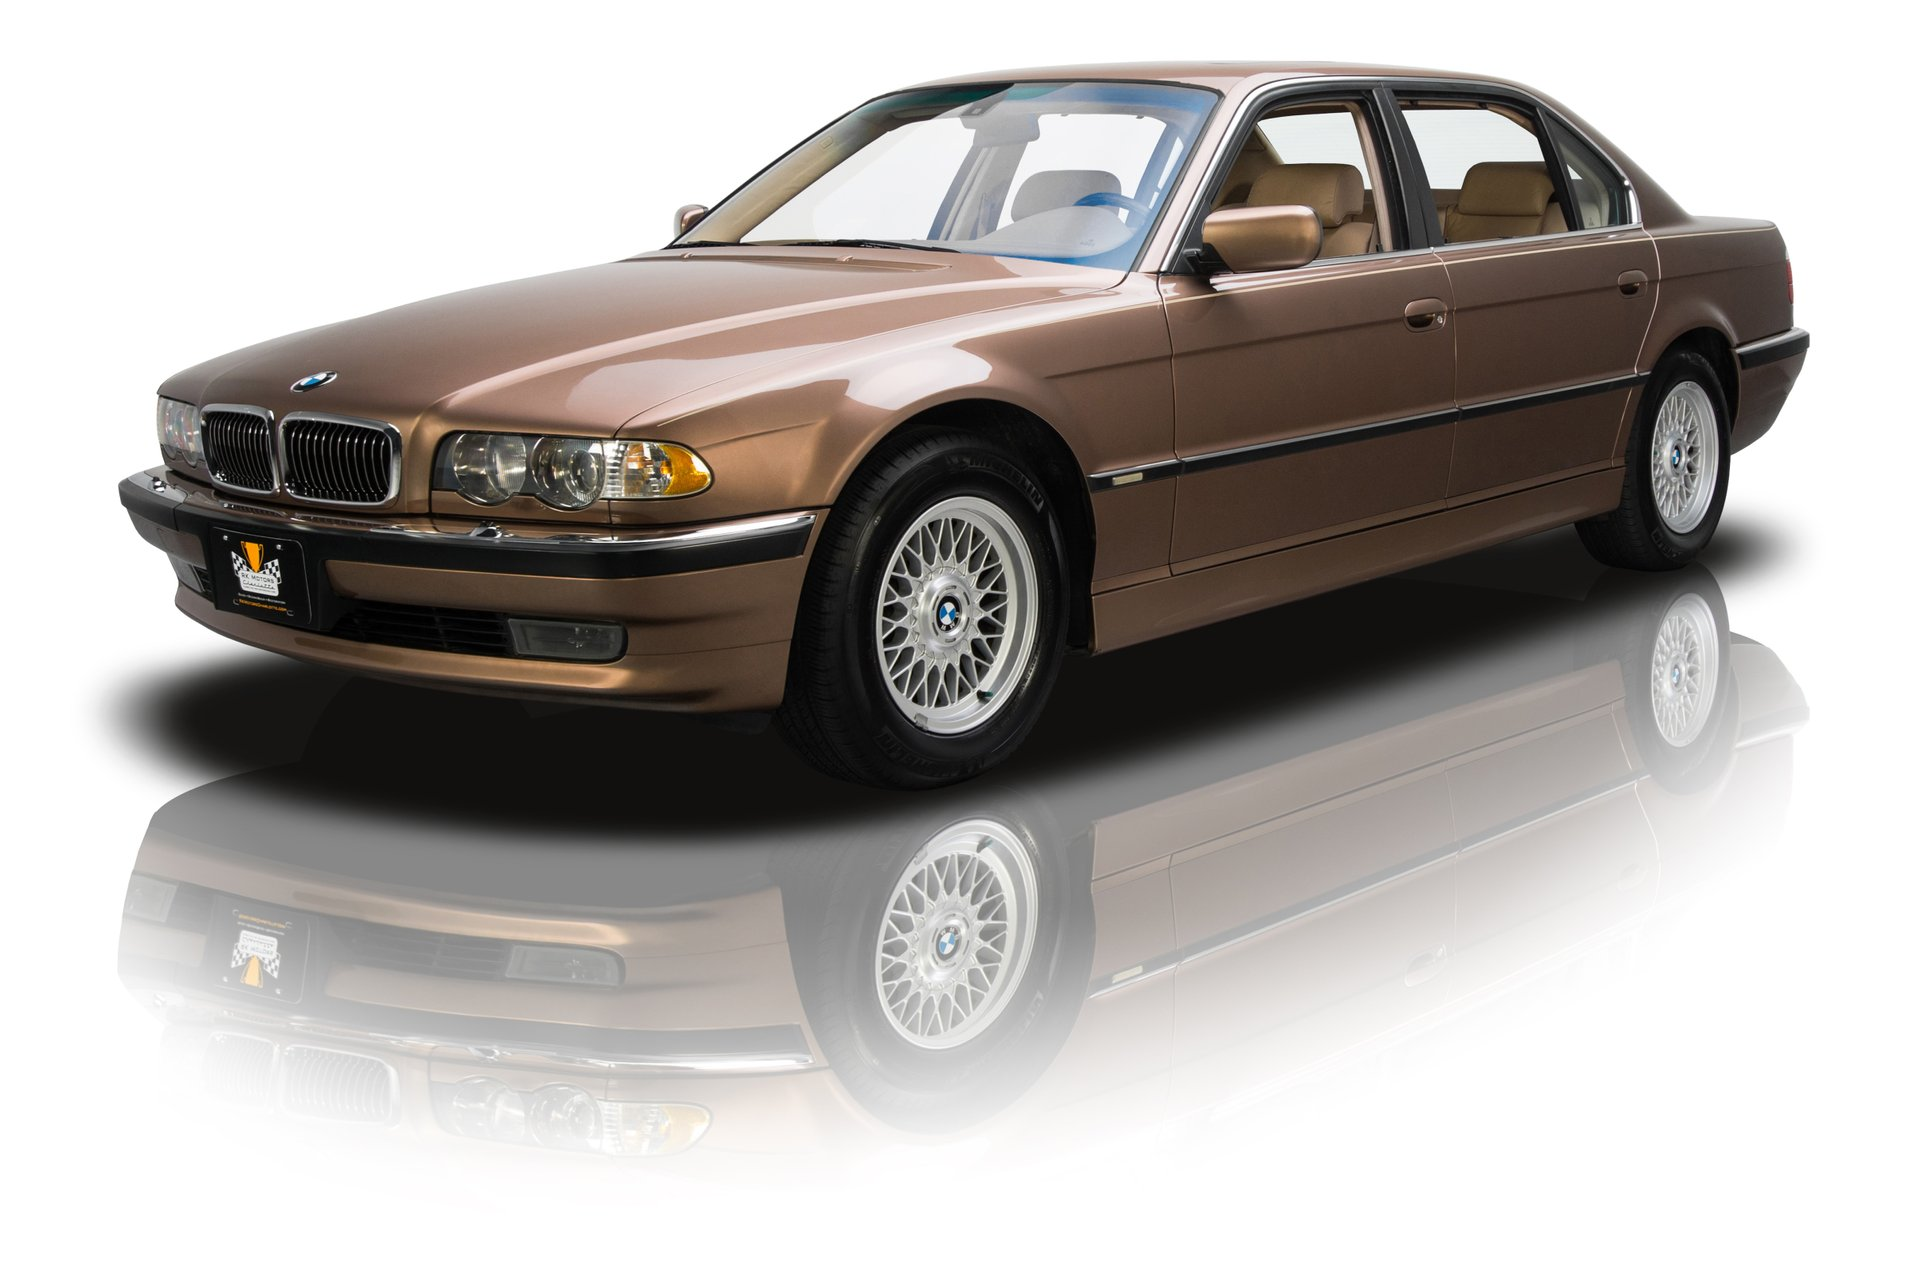 134512 2001 Bmw 740i Rk Motors Classic Cars For Sale